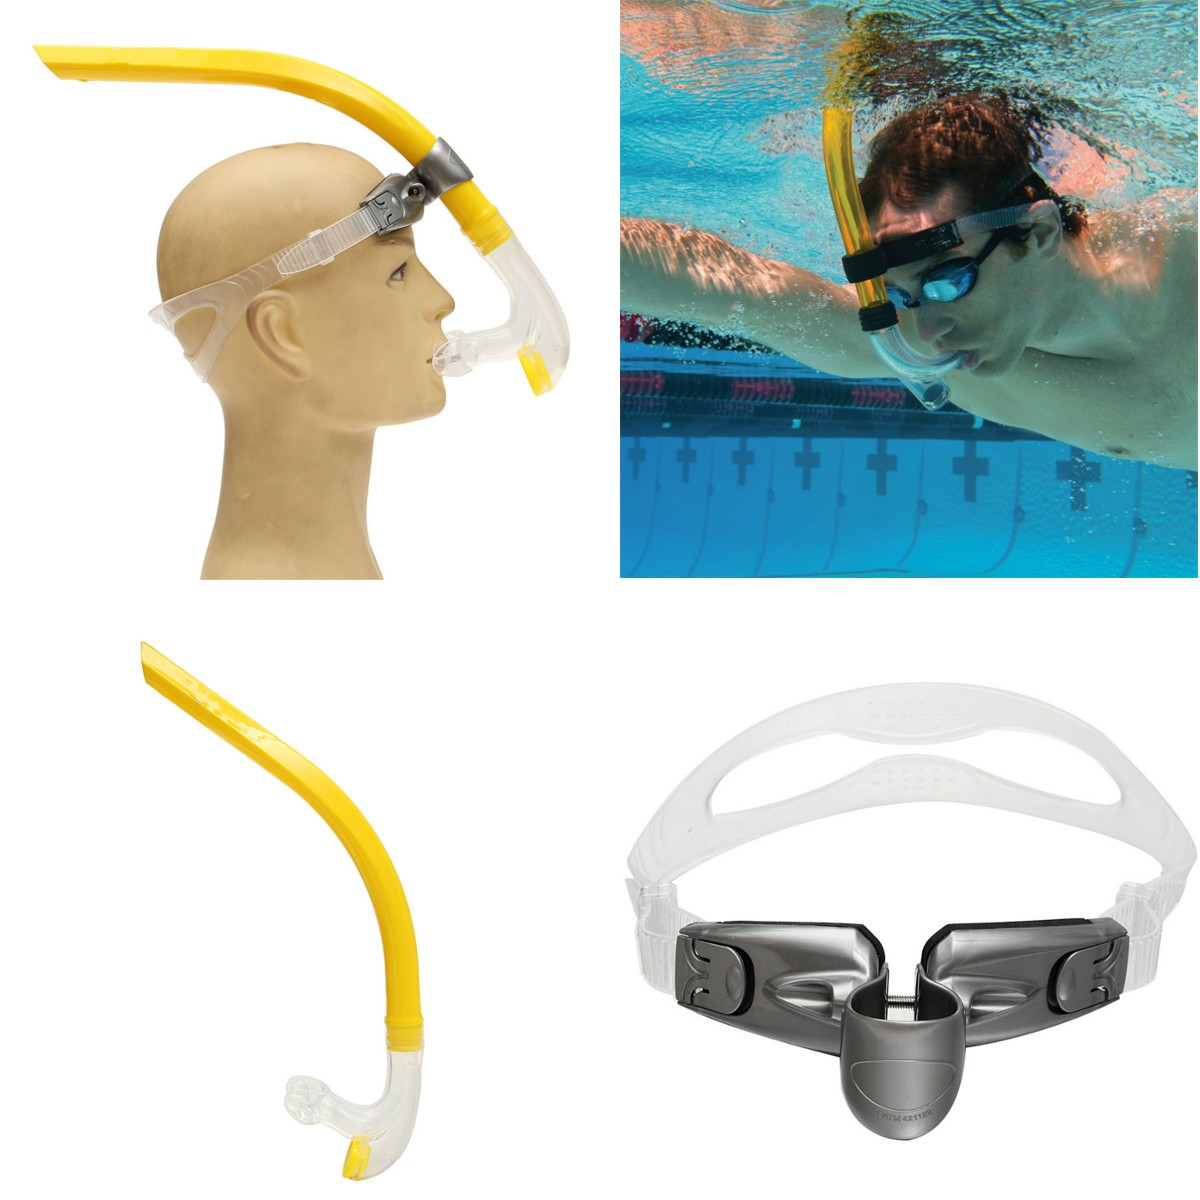 Swimmer's Snorkel Silicone Air-Ease Center Front-mount Swimming Training Snorkel Tools